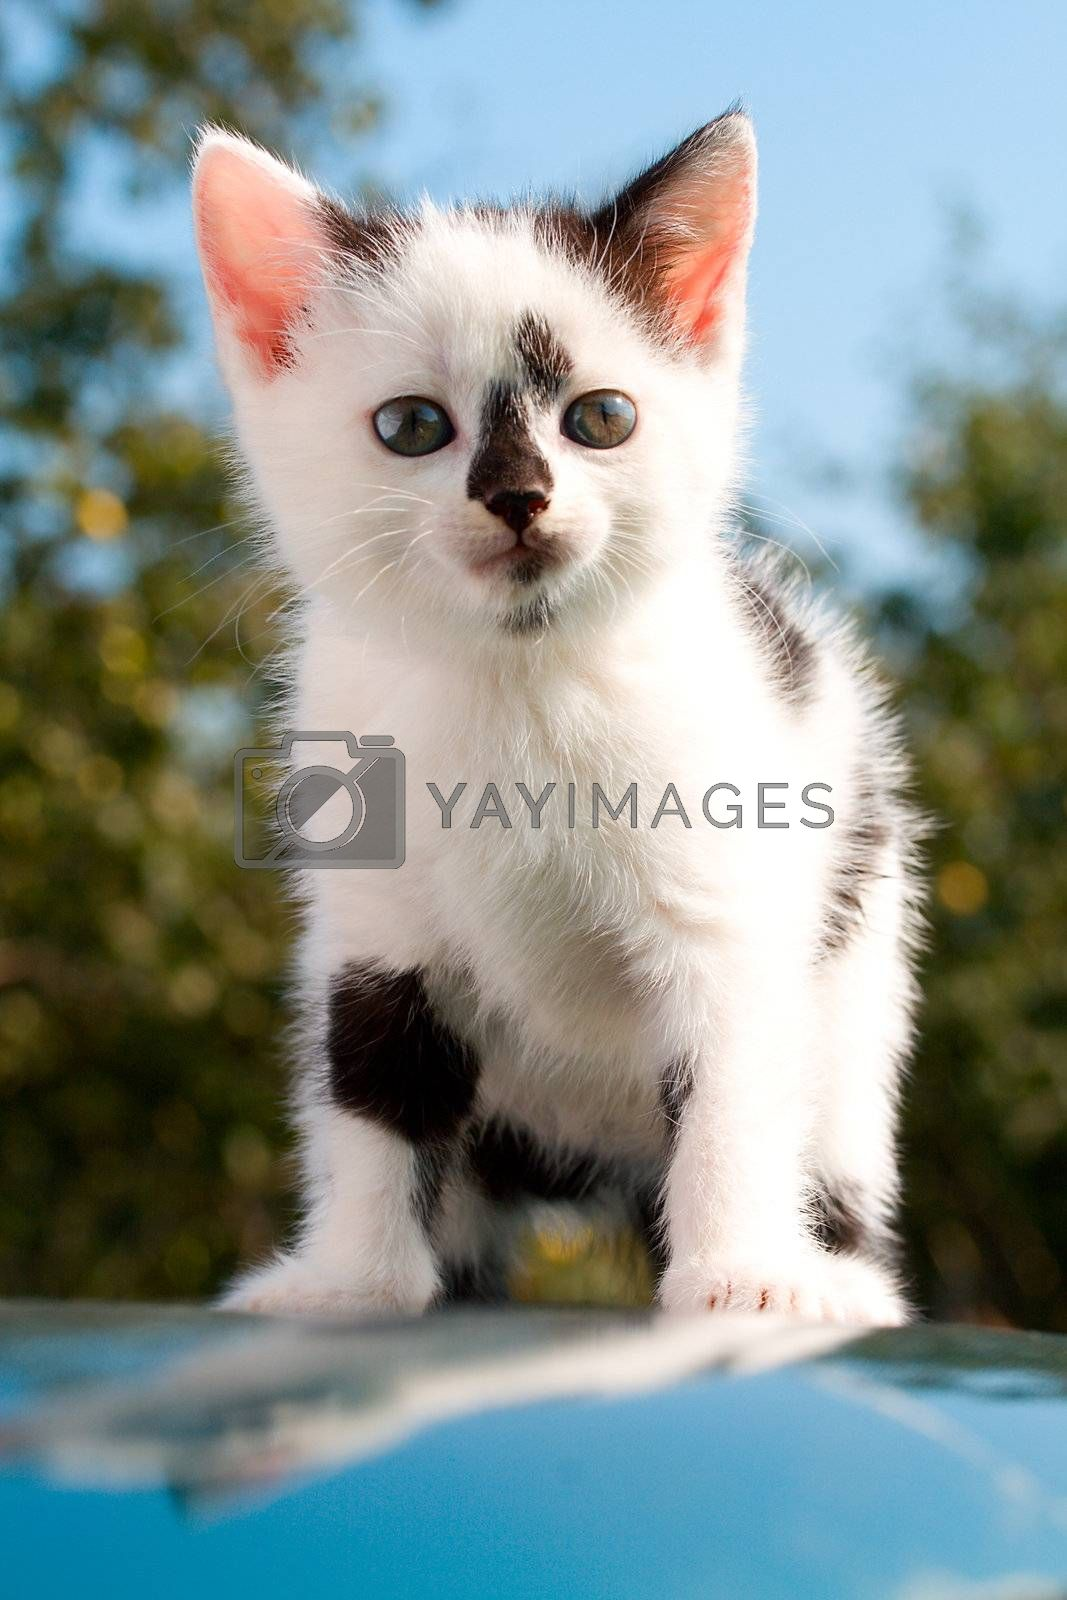 close-up sitting kitten on car with reflection